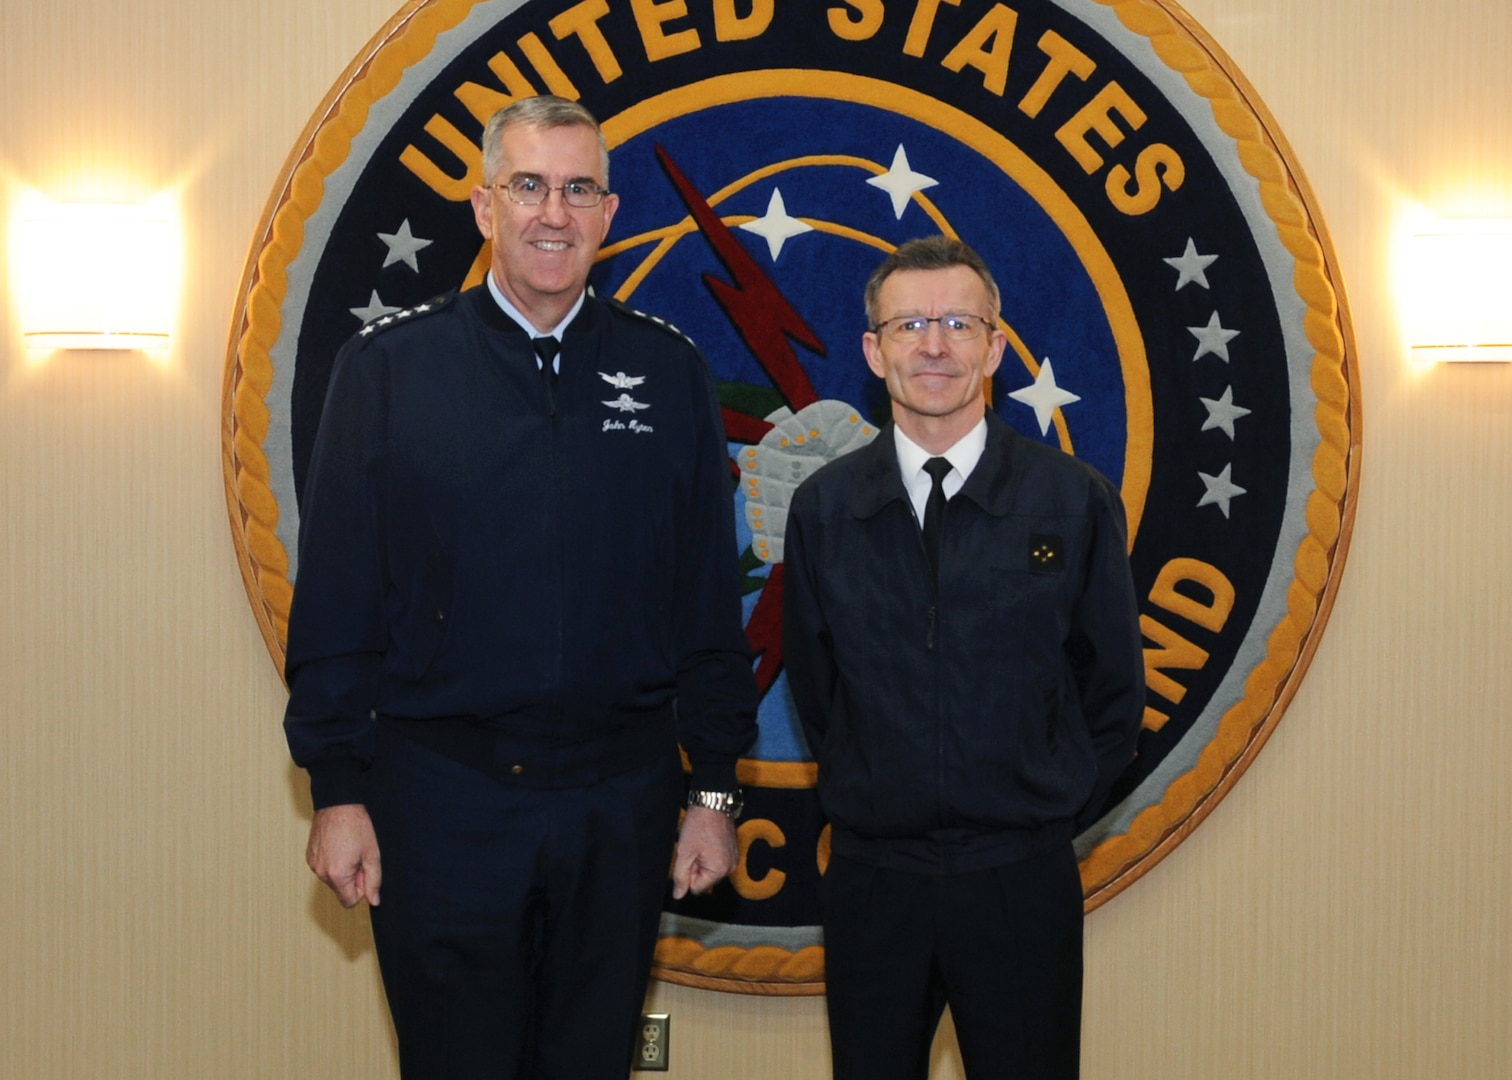 U.S. Air Force Gen. John Hyten, commander of U.S. Strategic Command (USSTRATCOM), welcomes French Air Force Lt. Gen. Bernard Schuler, commander of French Strategic Air Command, to USSTRATCOM headquarters at Offutt Air Force Base, Neb., April 23, 2018. During his visit, Schuler toured the command's Global Operations Center and participated in discussions with Hyten, other senior leaders and subject matter experts on the continuing cooperation between the U.S. and France.